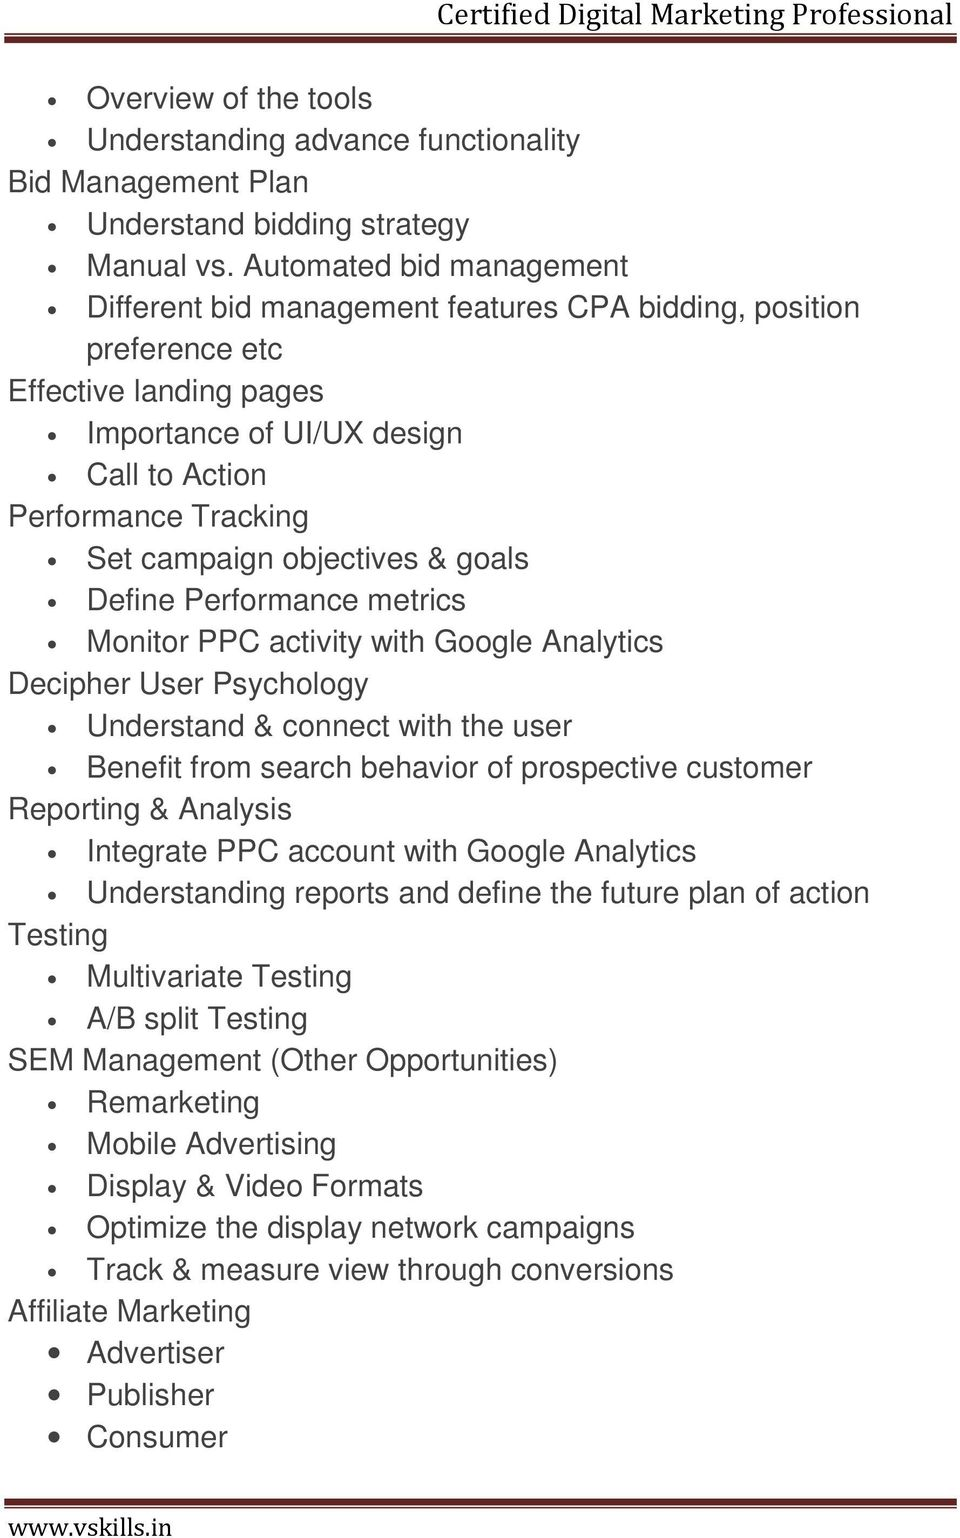 objectives & goals Define Performance metrics Monitor PPC activity with Google Analytics Decipher User Psychology Understand & connect with the user Benefit from search behavior of prospective